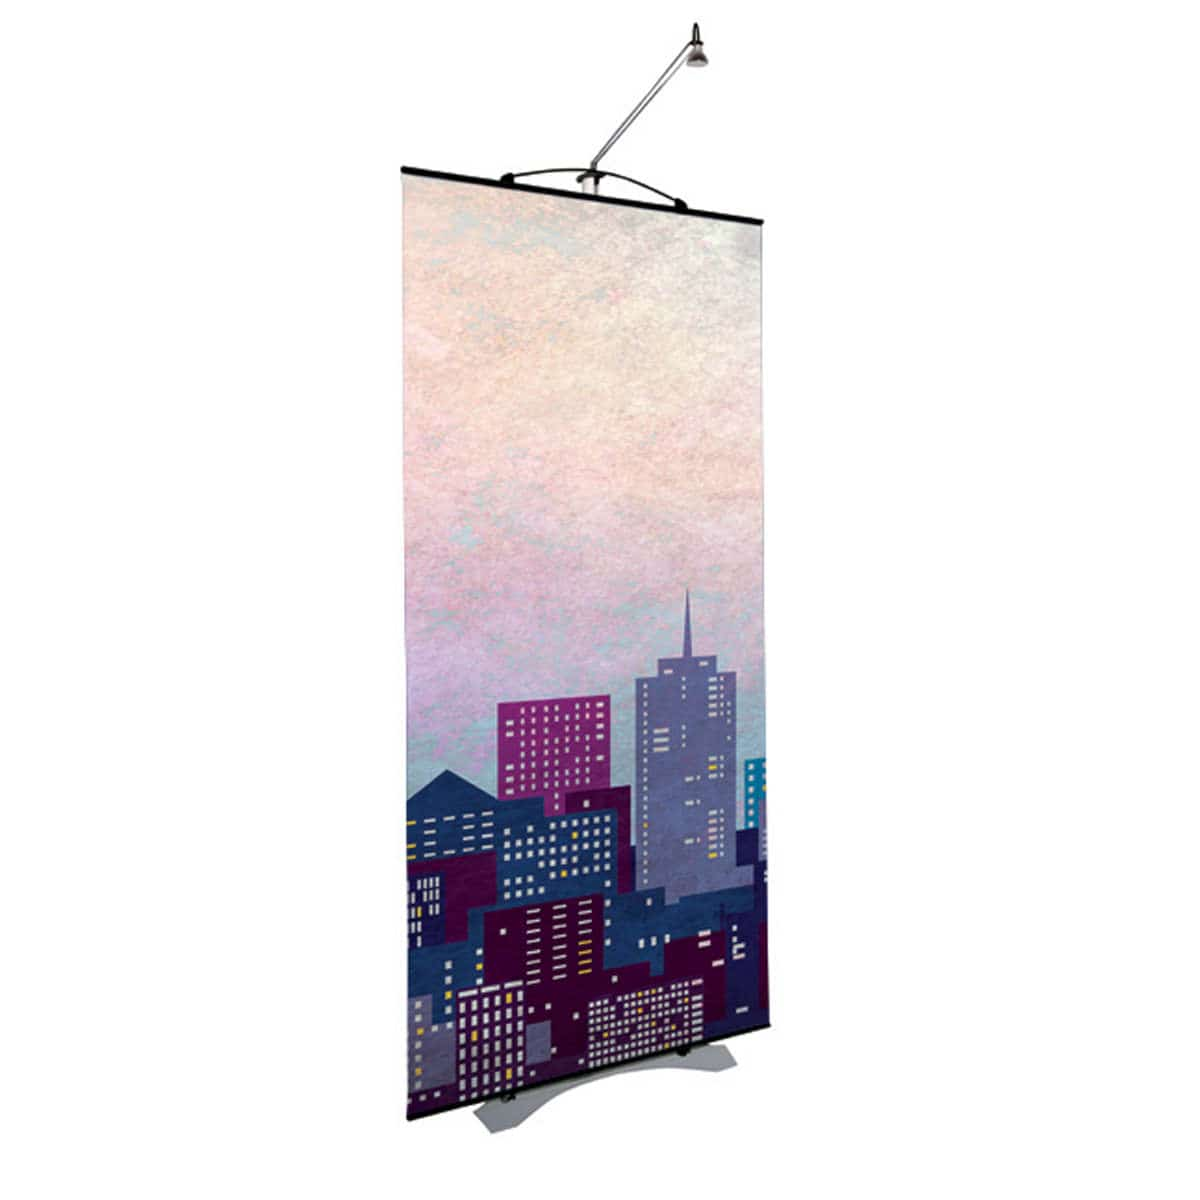 Single twist linkable banner